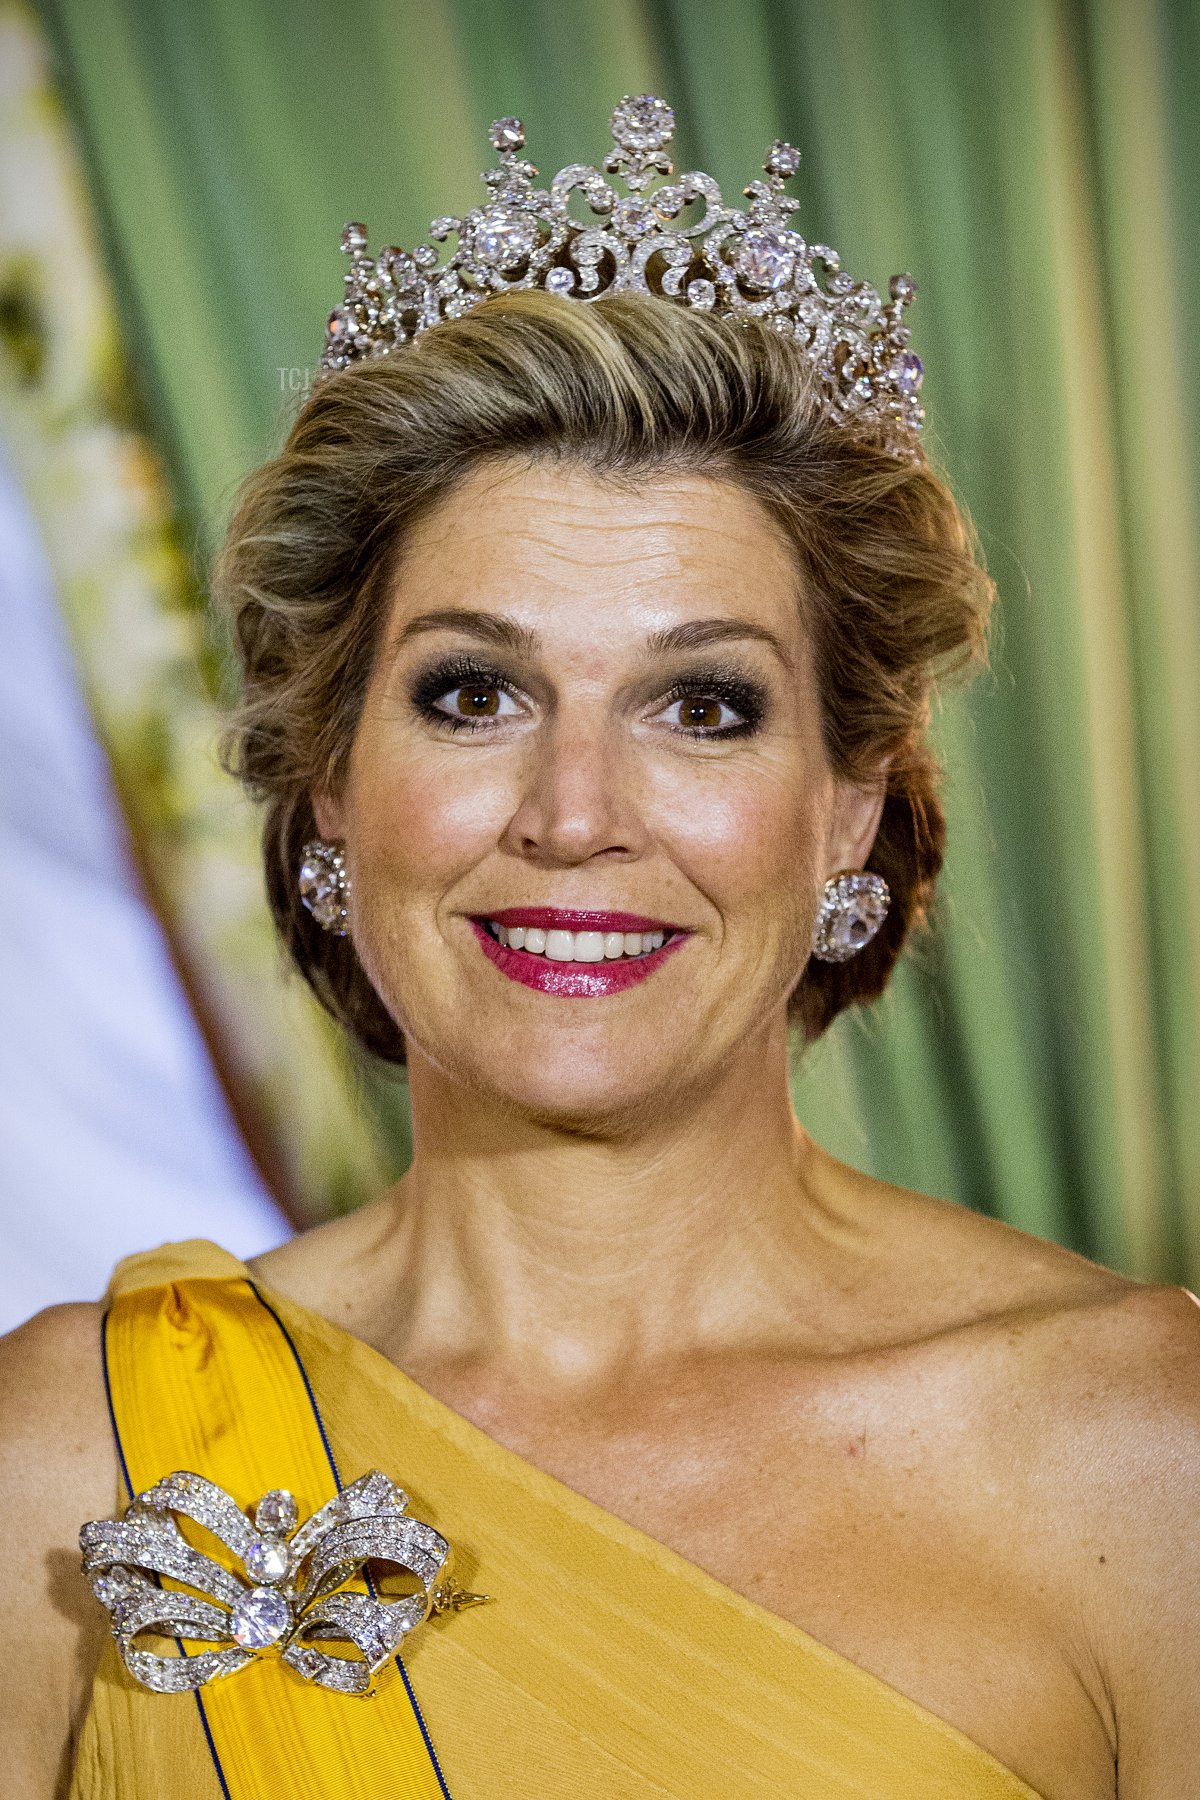 Queen Maxima of The Netherlands during the official picture at the state banquet in the Grand Ducal Palace on May 23, 2018 in Luxembourg